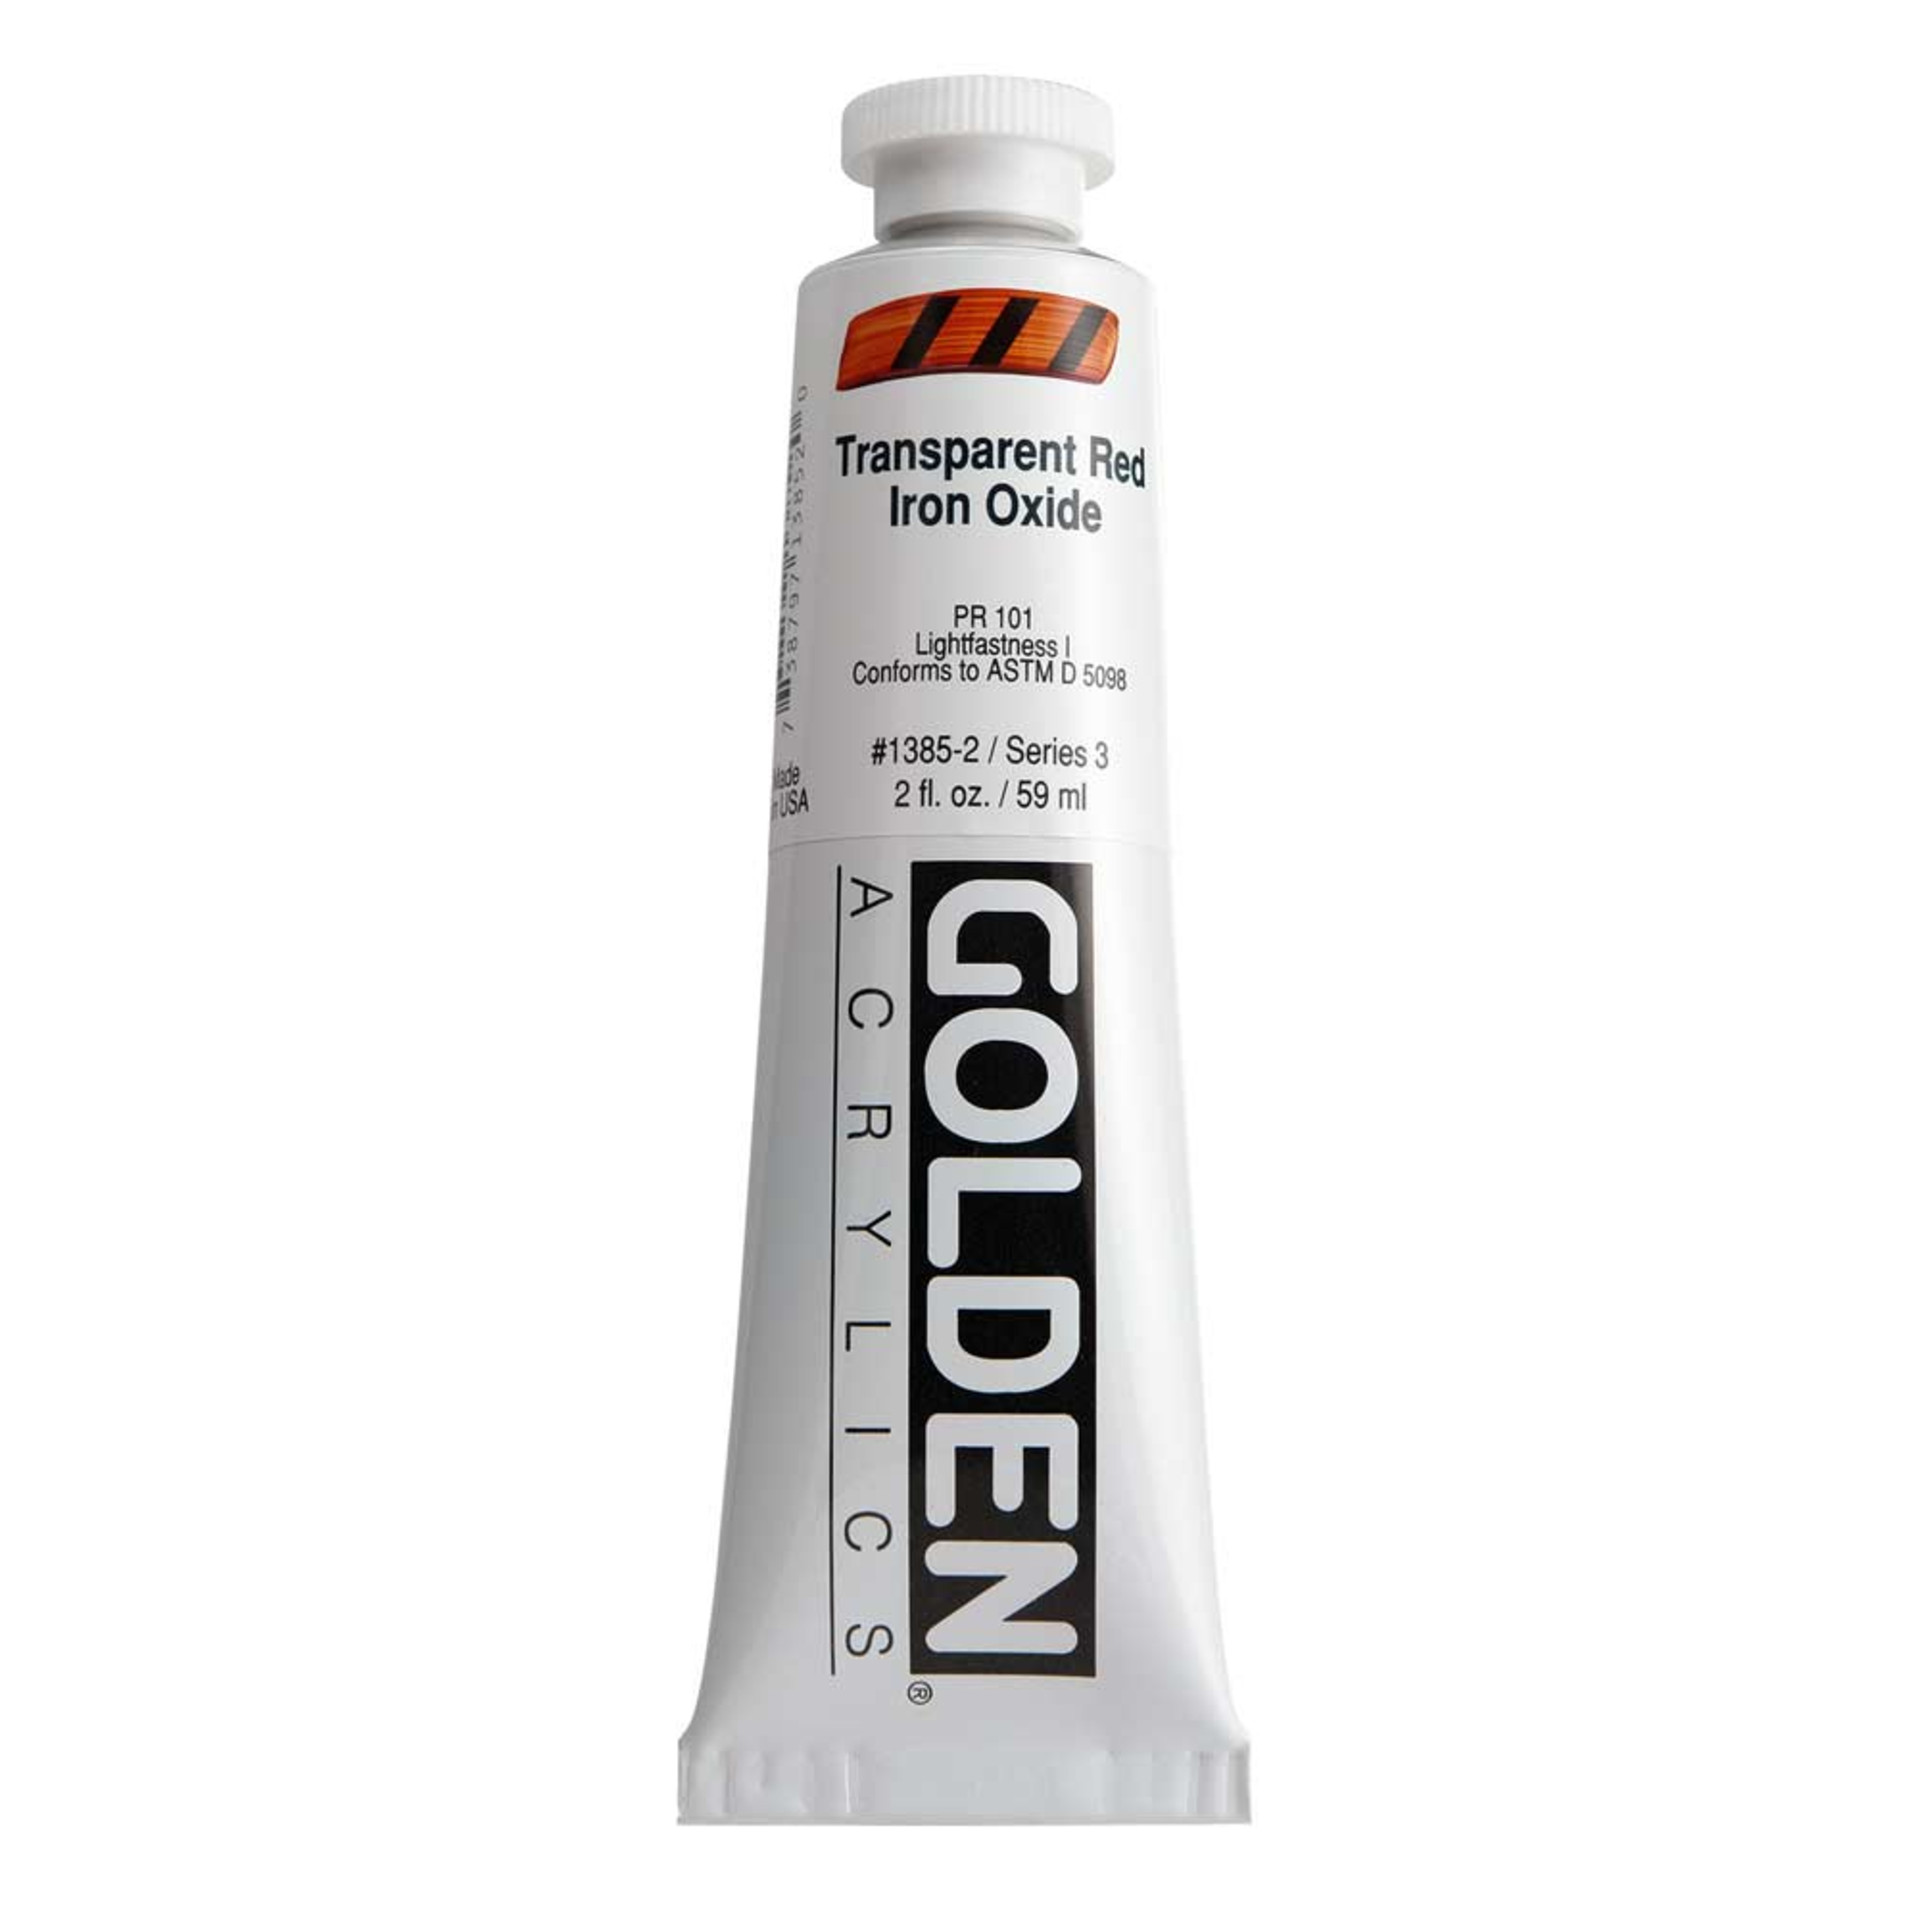 Golden Heavy Body Acrylic Tube 2oz Transparent Red Iron Oxide